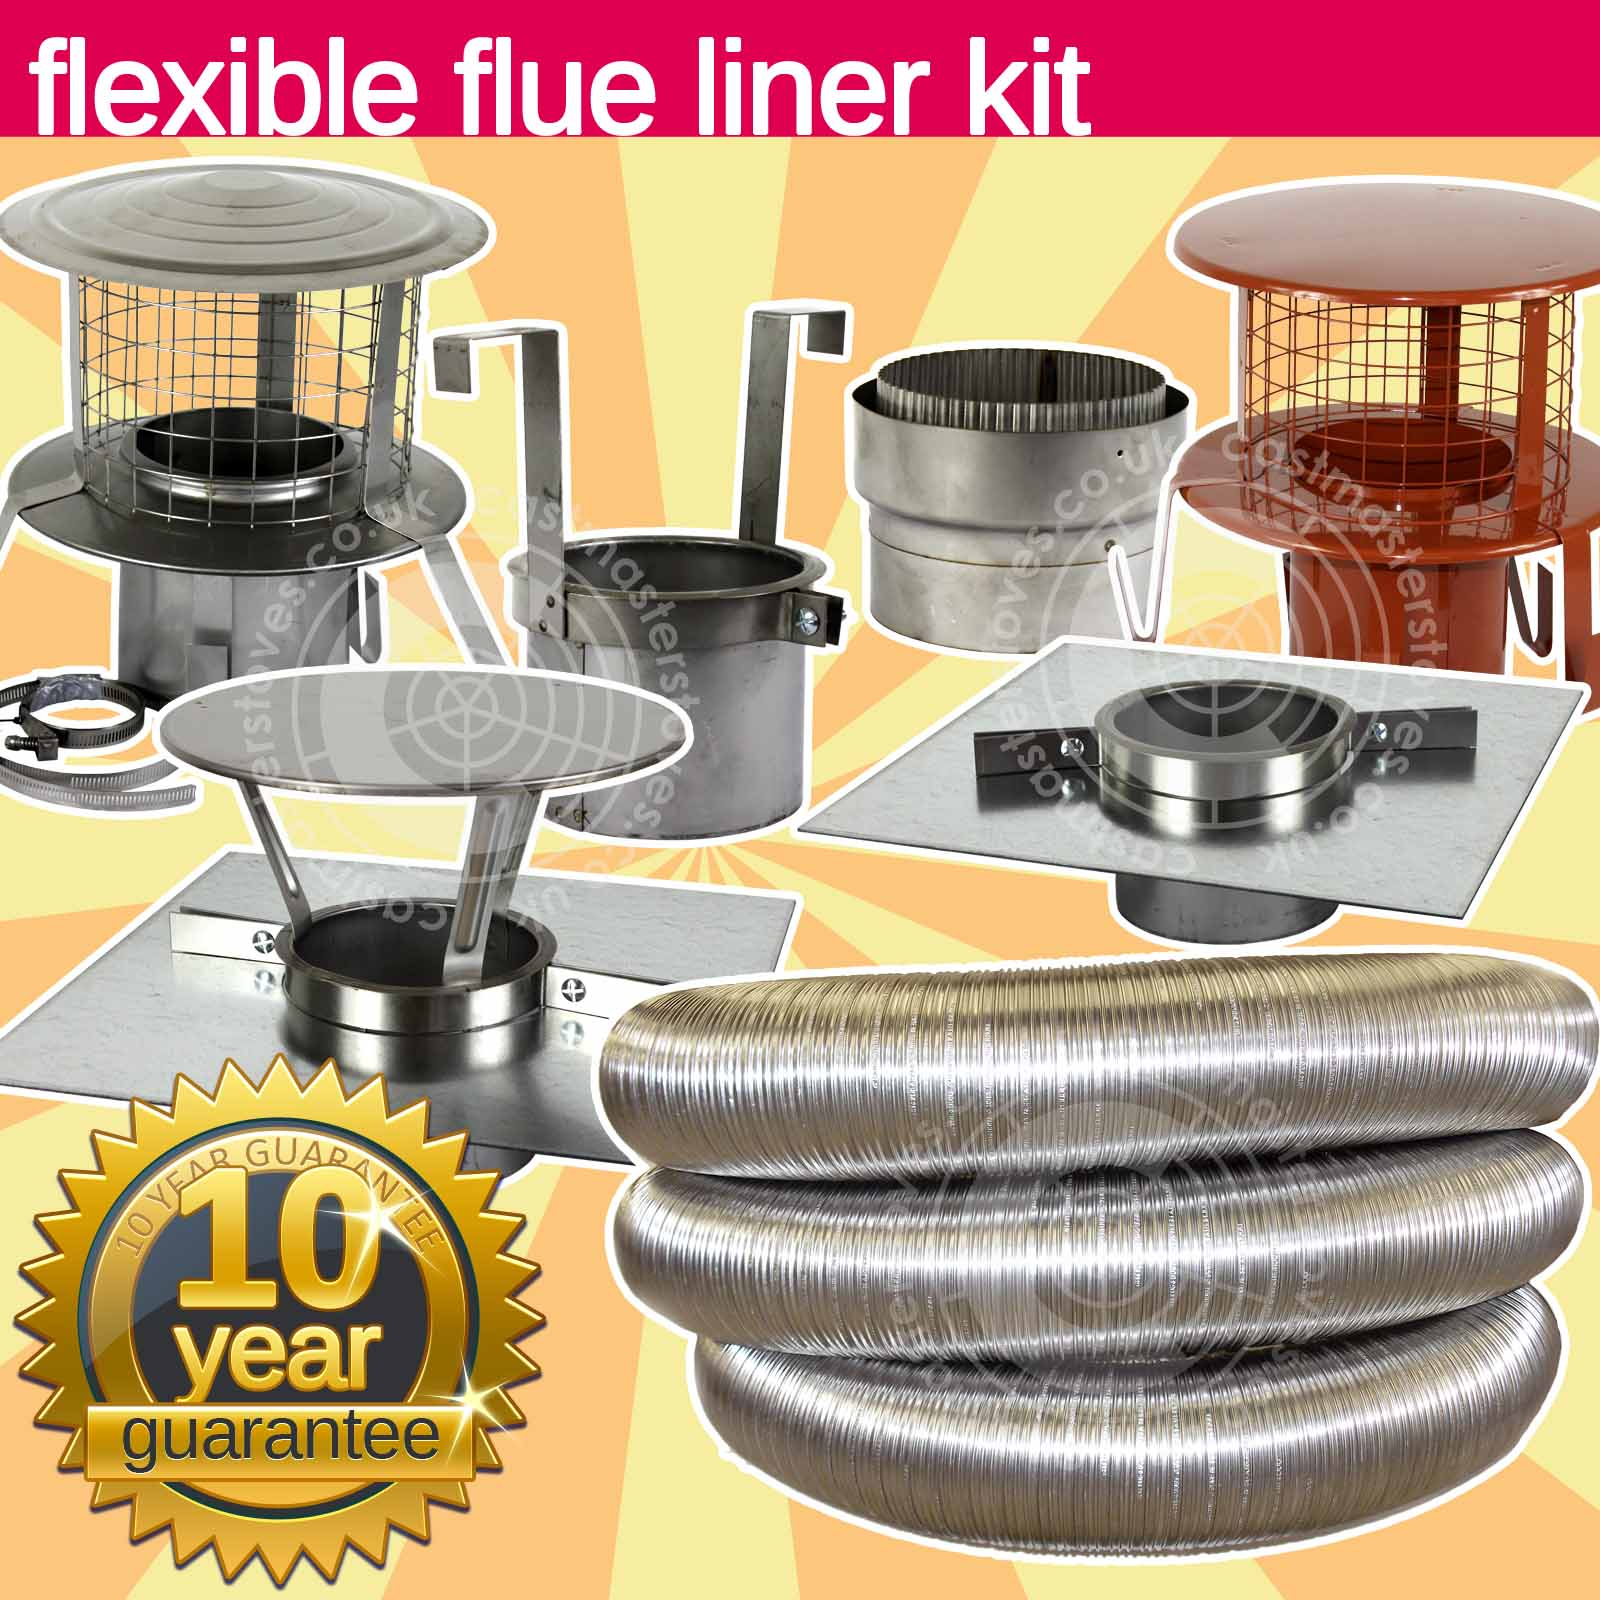 Astounding Details About 6 Inch 150Mm Stainless Steel Flue Liner Fitting Kit For Wood Burning Stoves Home Remodeling Inspirations Genioncuboardxyz